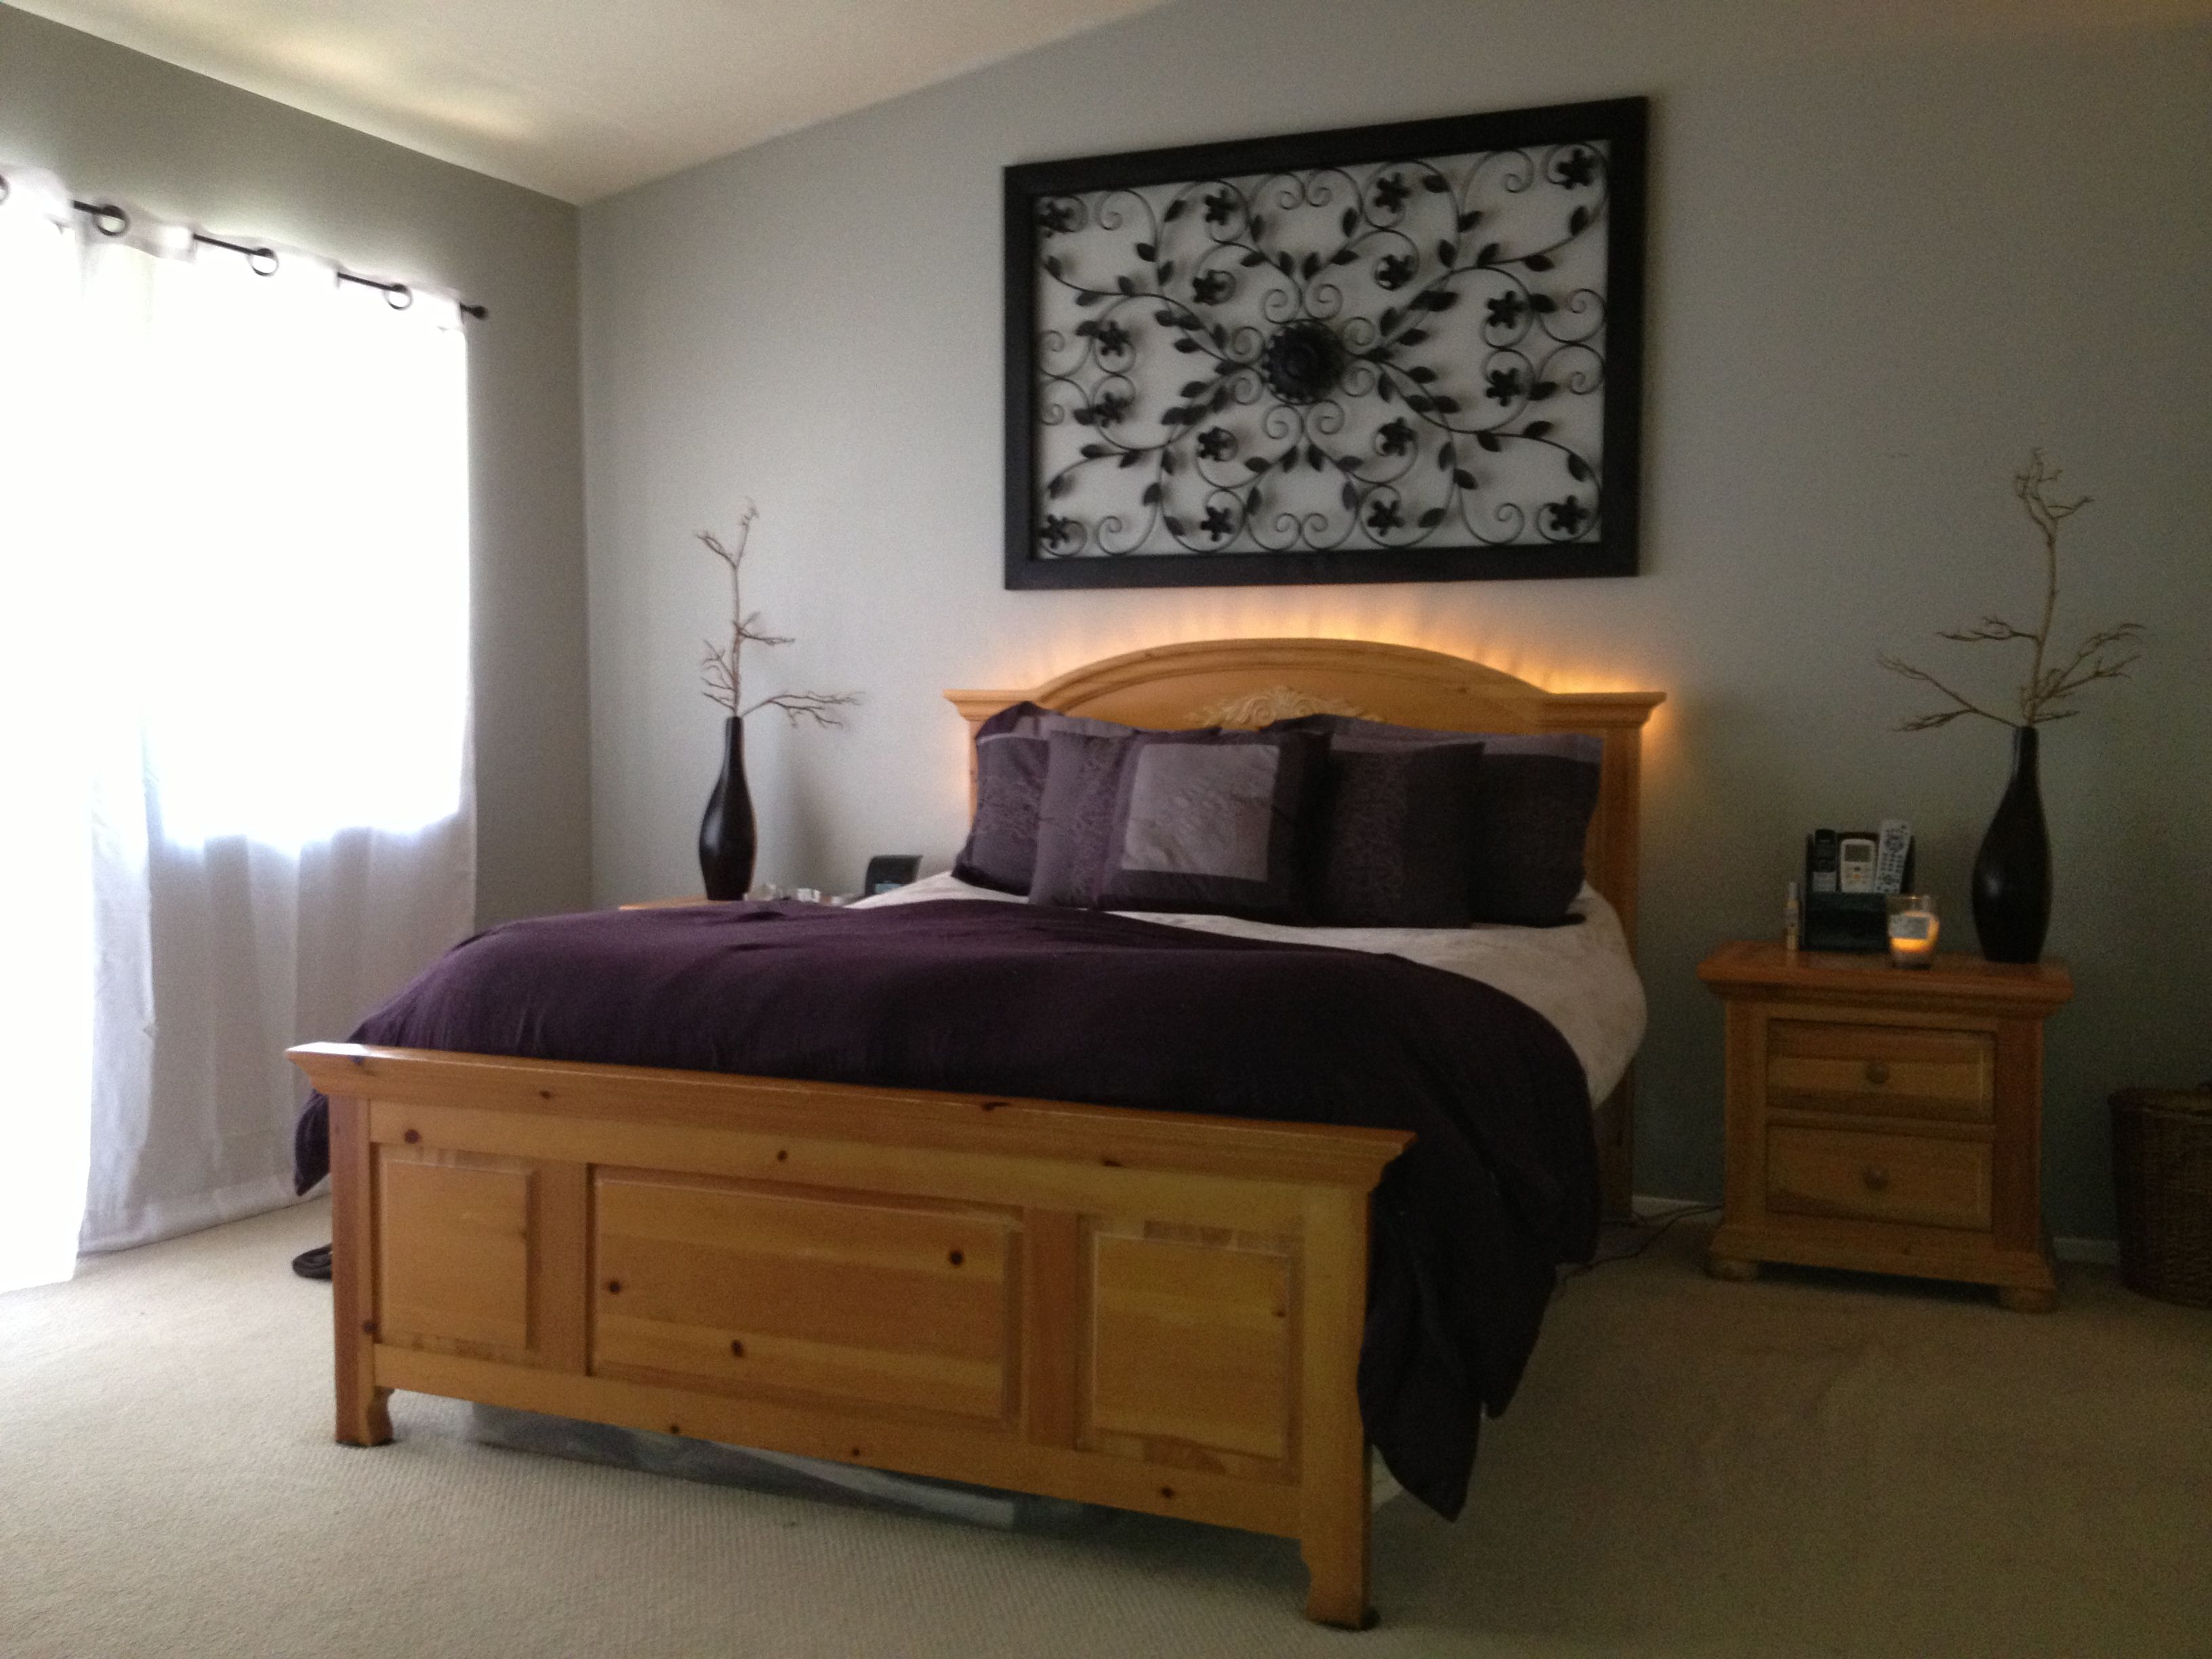 Best Just Finished Re Doing Our Master Bedroom Painting New 400 x 300